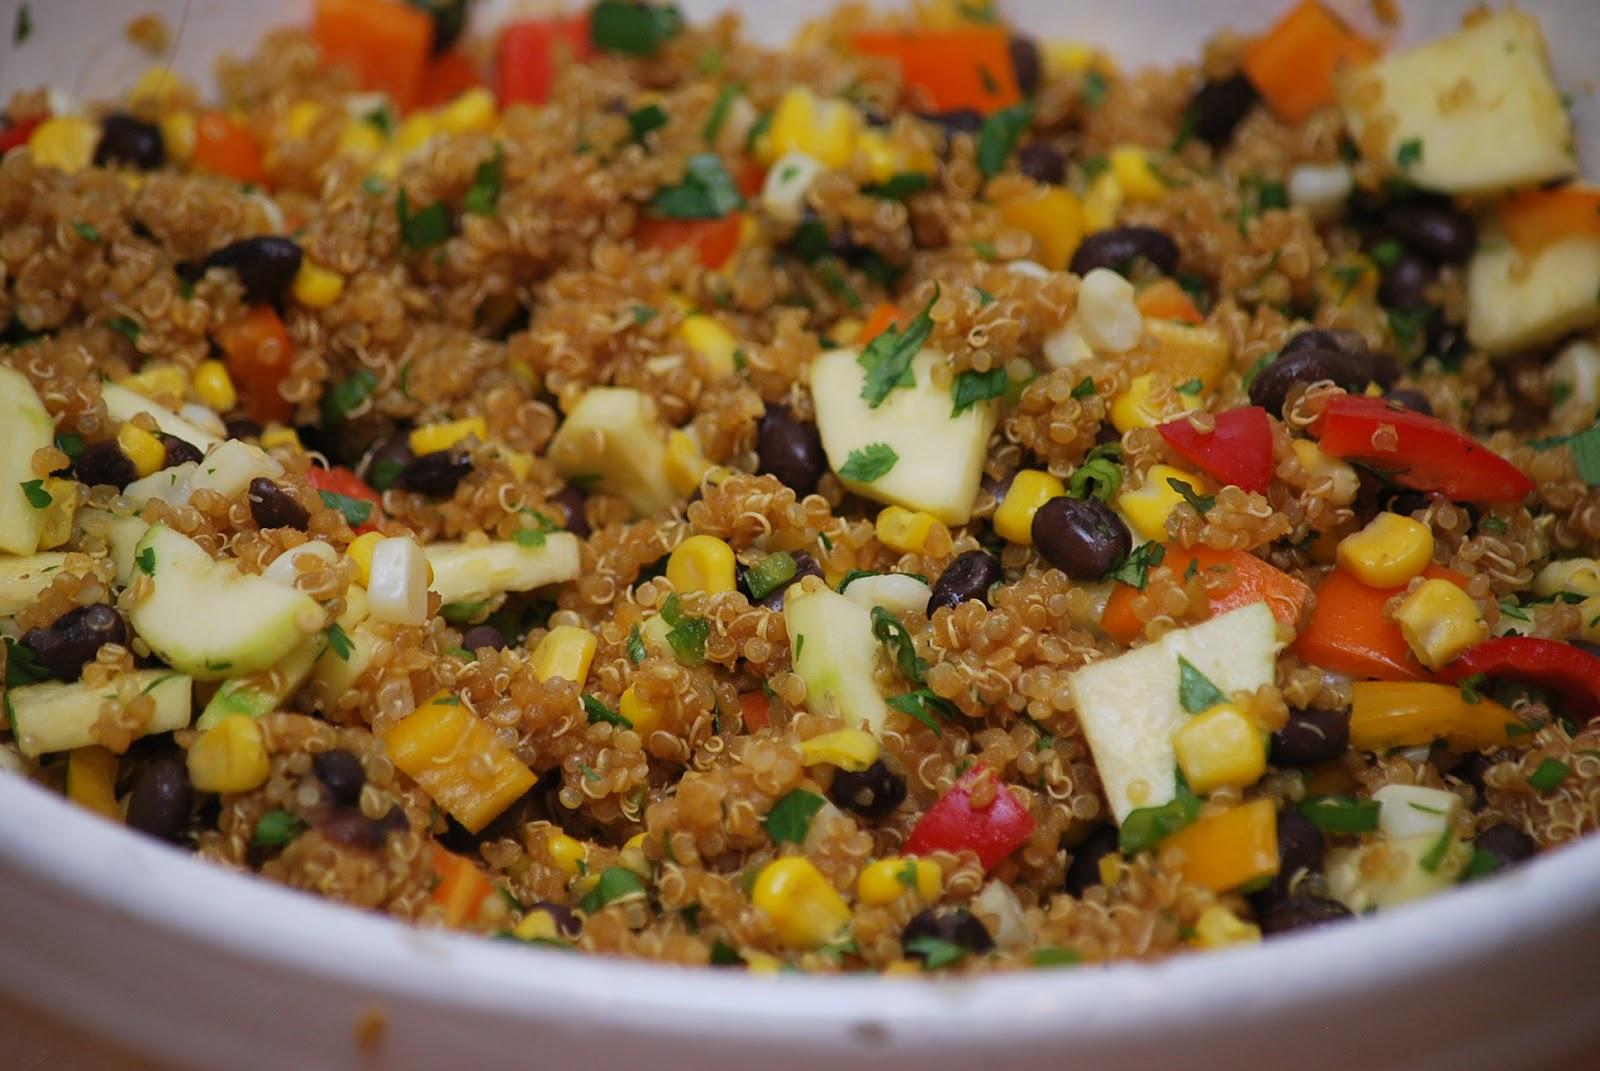 ... quinoa. Sprinkle pumpkin seeds over salad. Serve immediately or hold